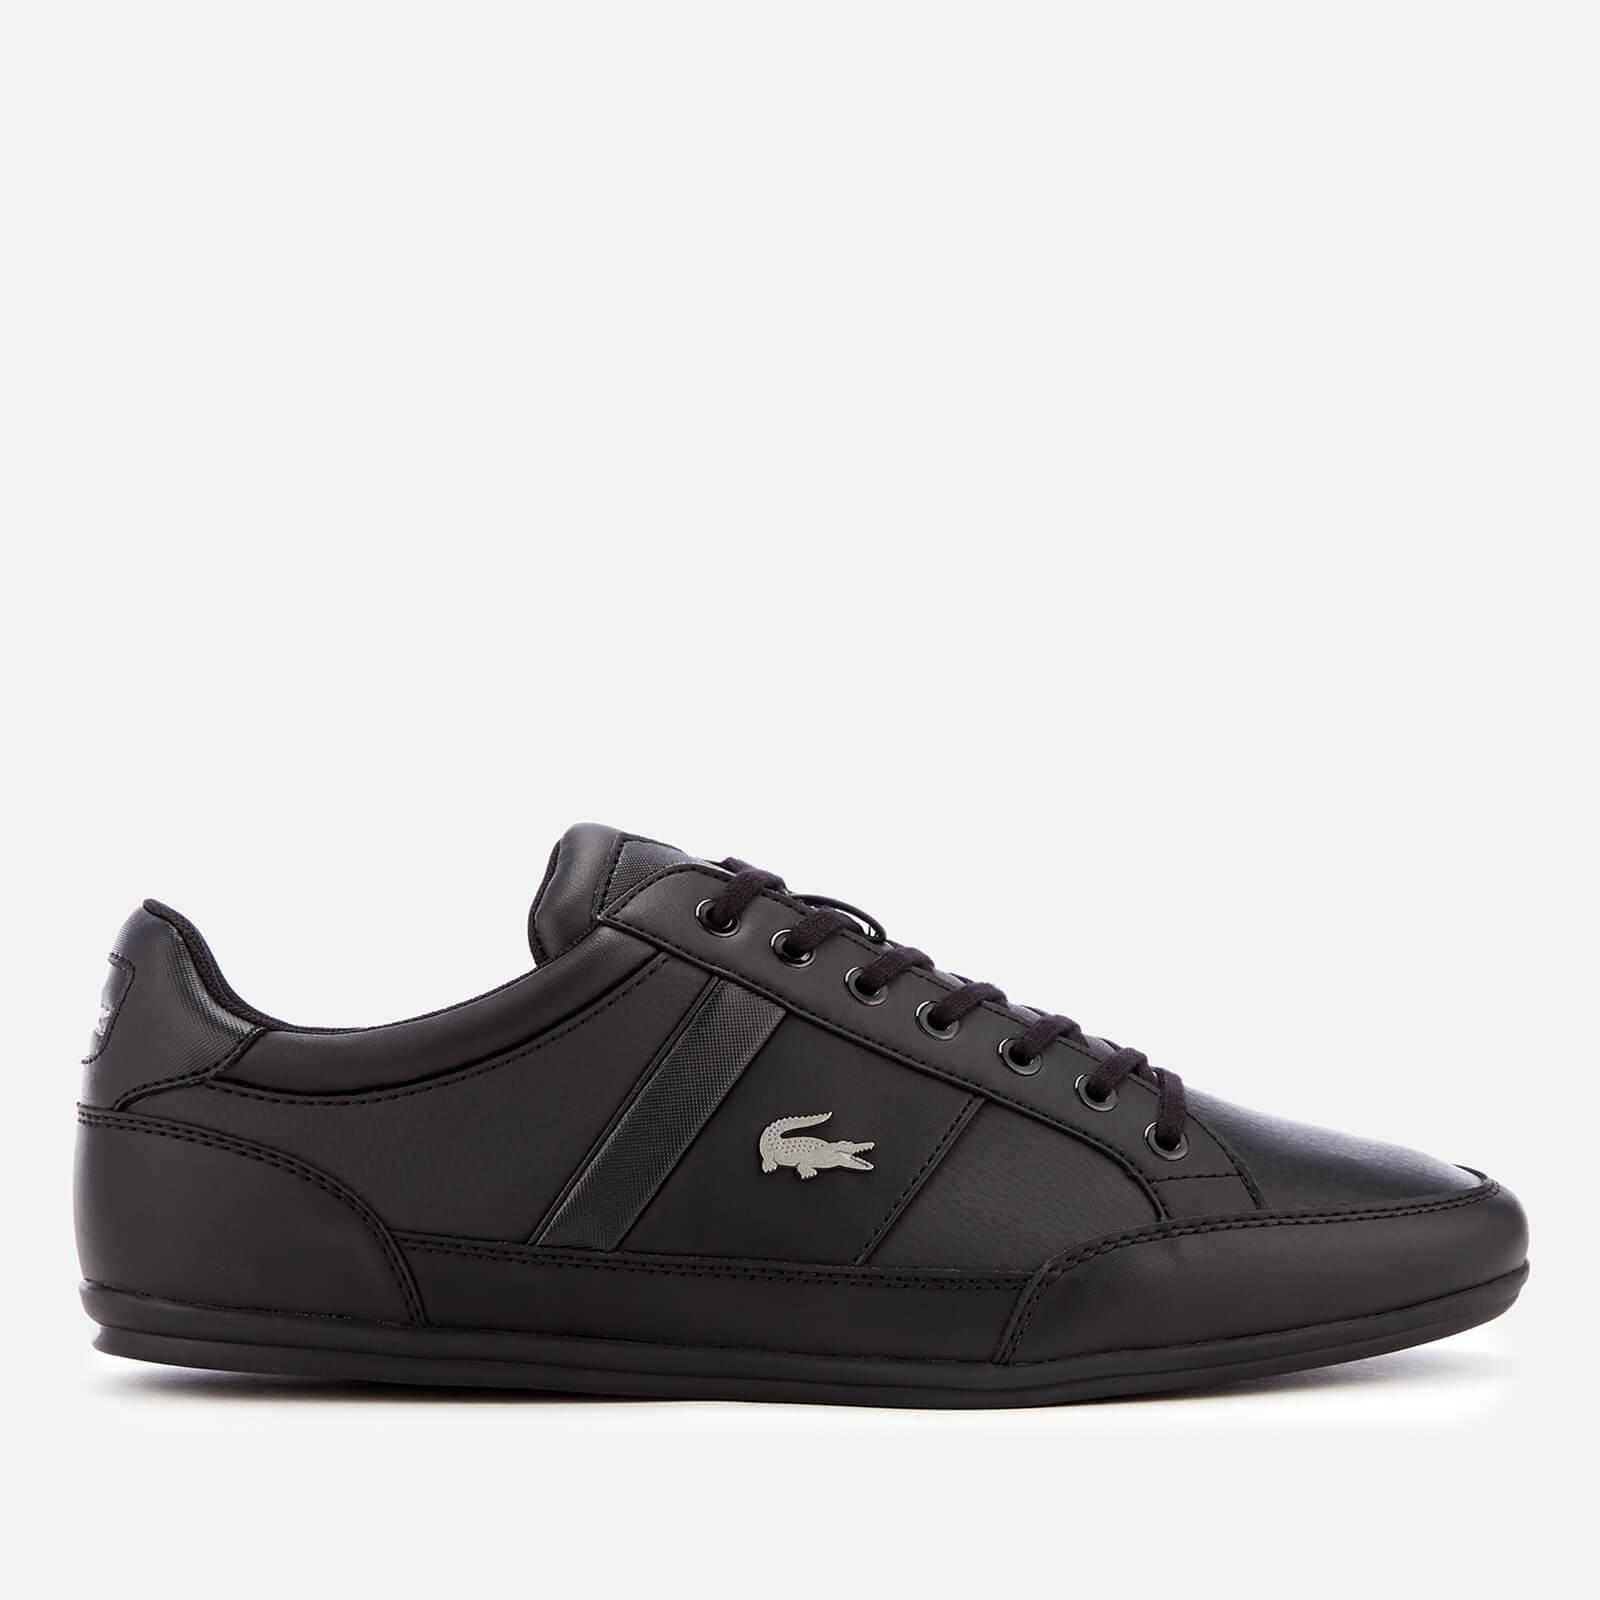 458350145ca7 Lacoste Chaymon Bl 1 Leather Low Profile Trainers in Black for Men ...